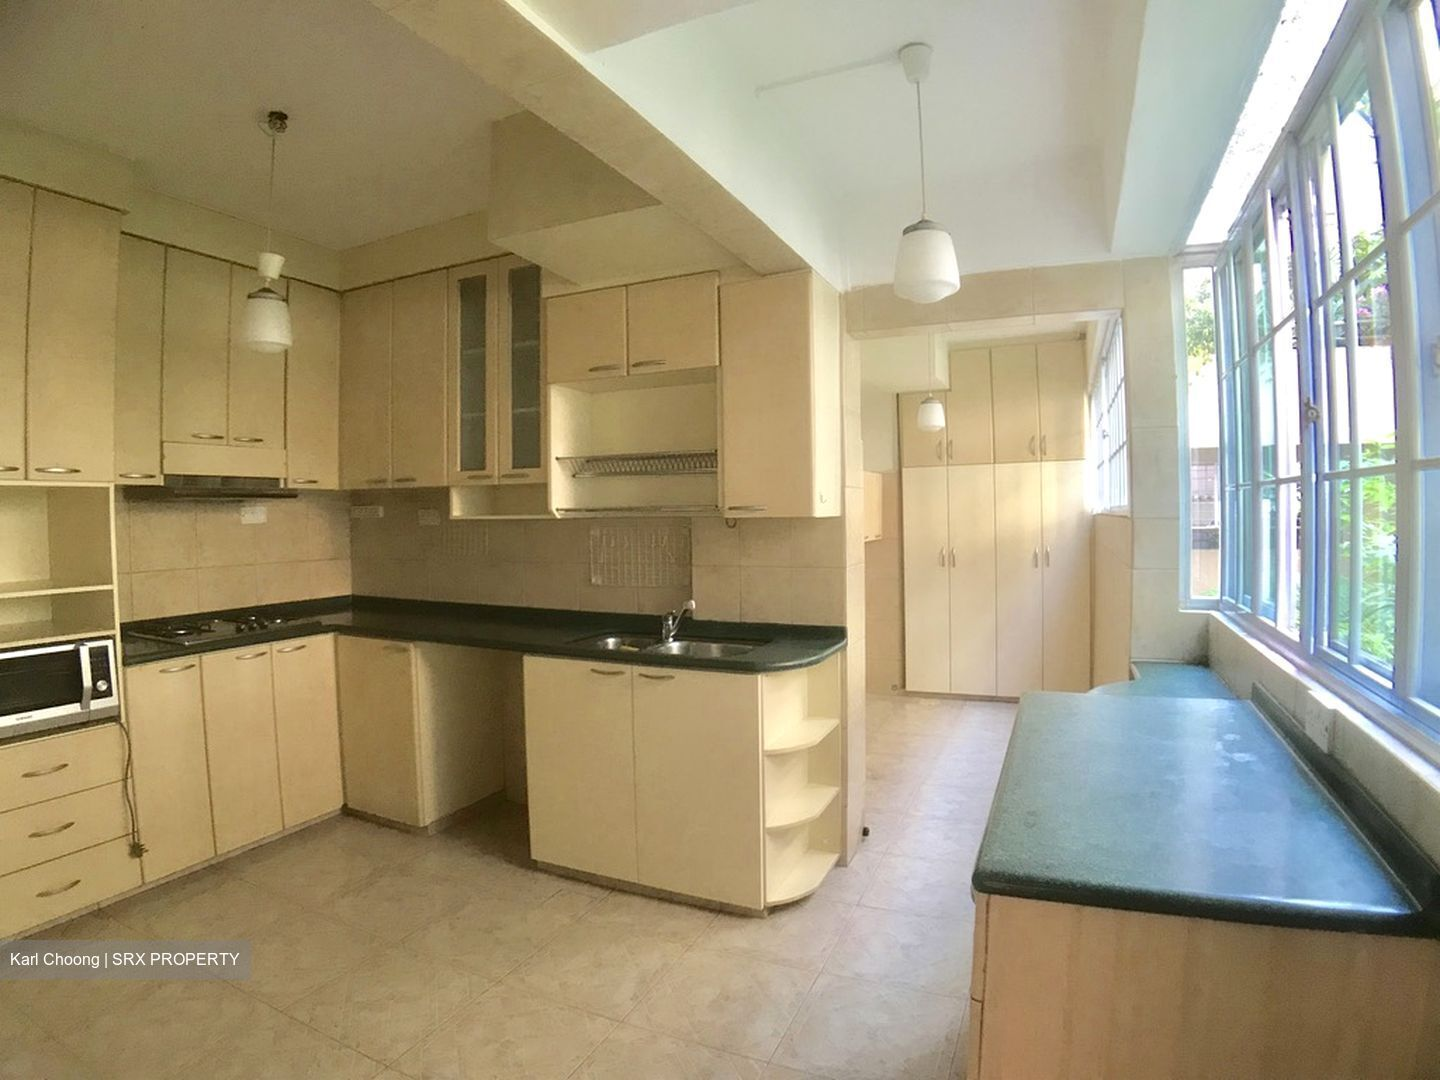 Bedok Court (D16), Condominium #272215741